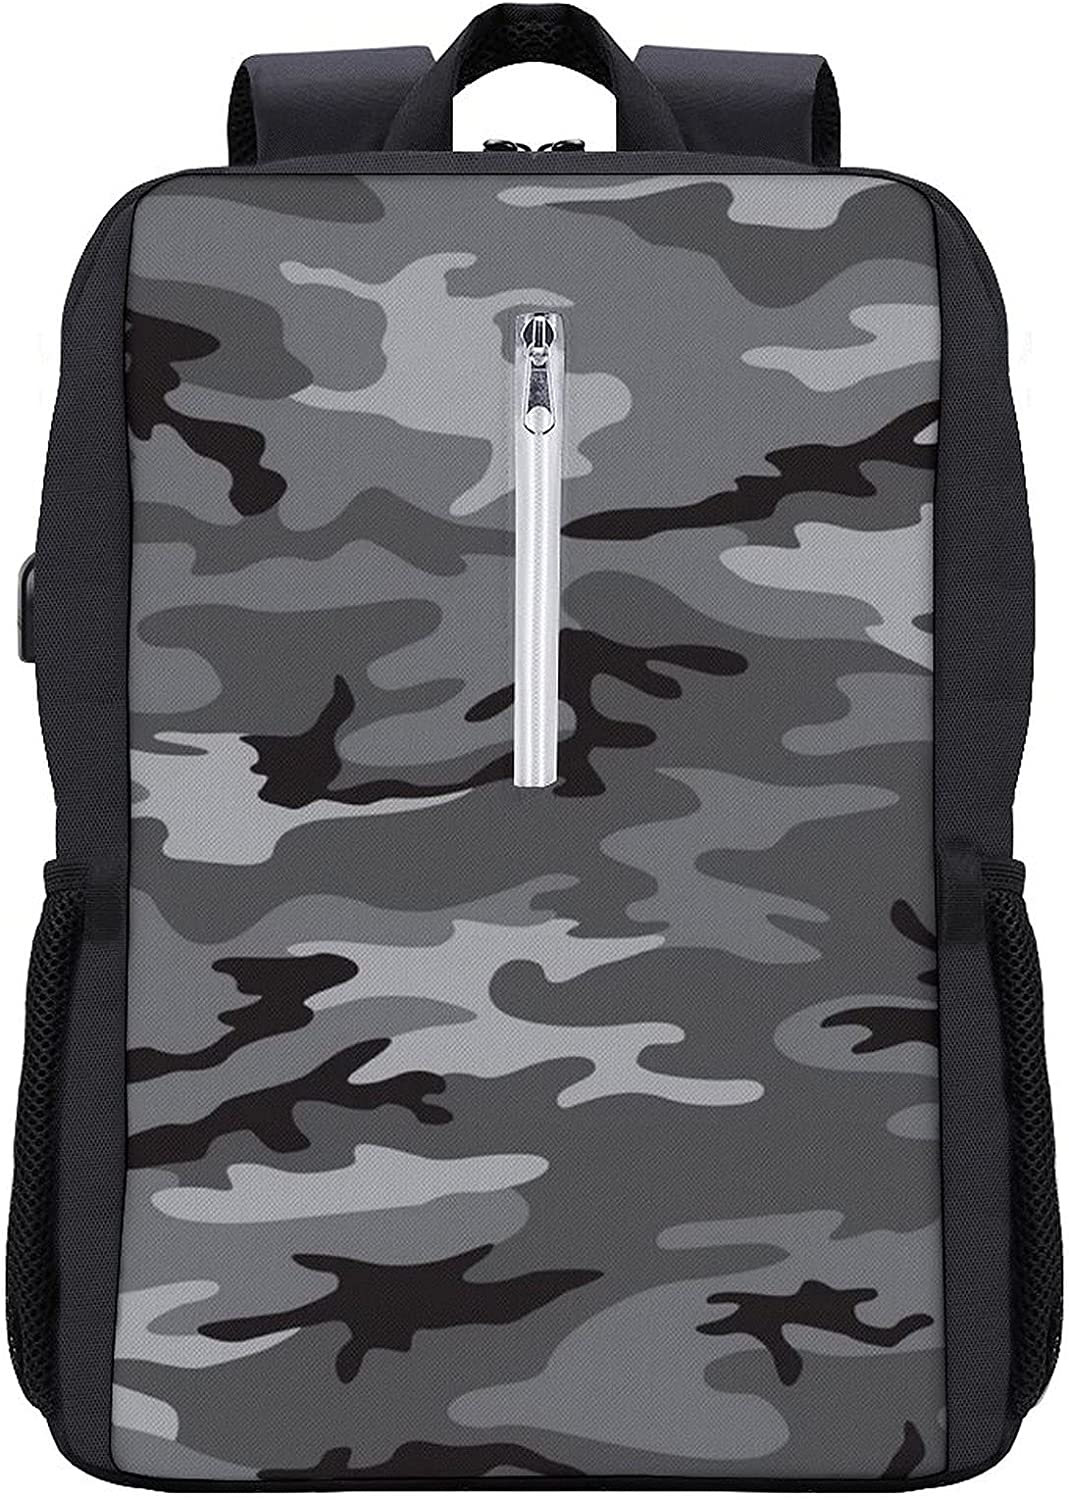 Selling Backpack With USB Brand Cheap Sale Venue Charging Port College Studen Bookbag Schoolbag